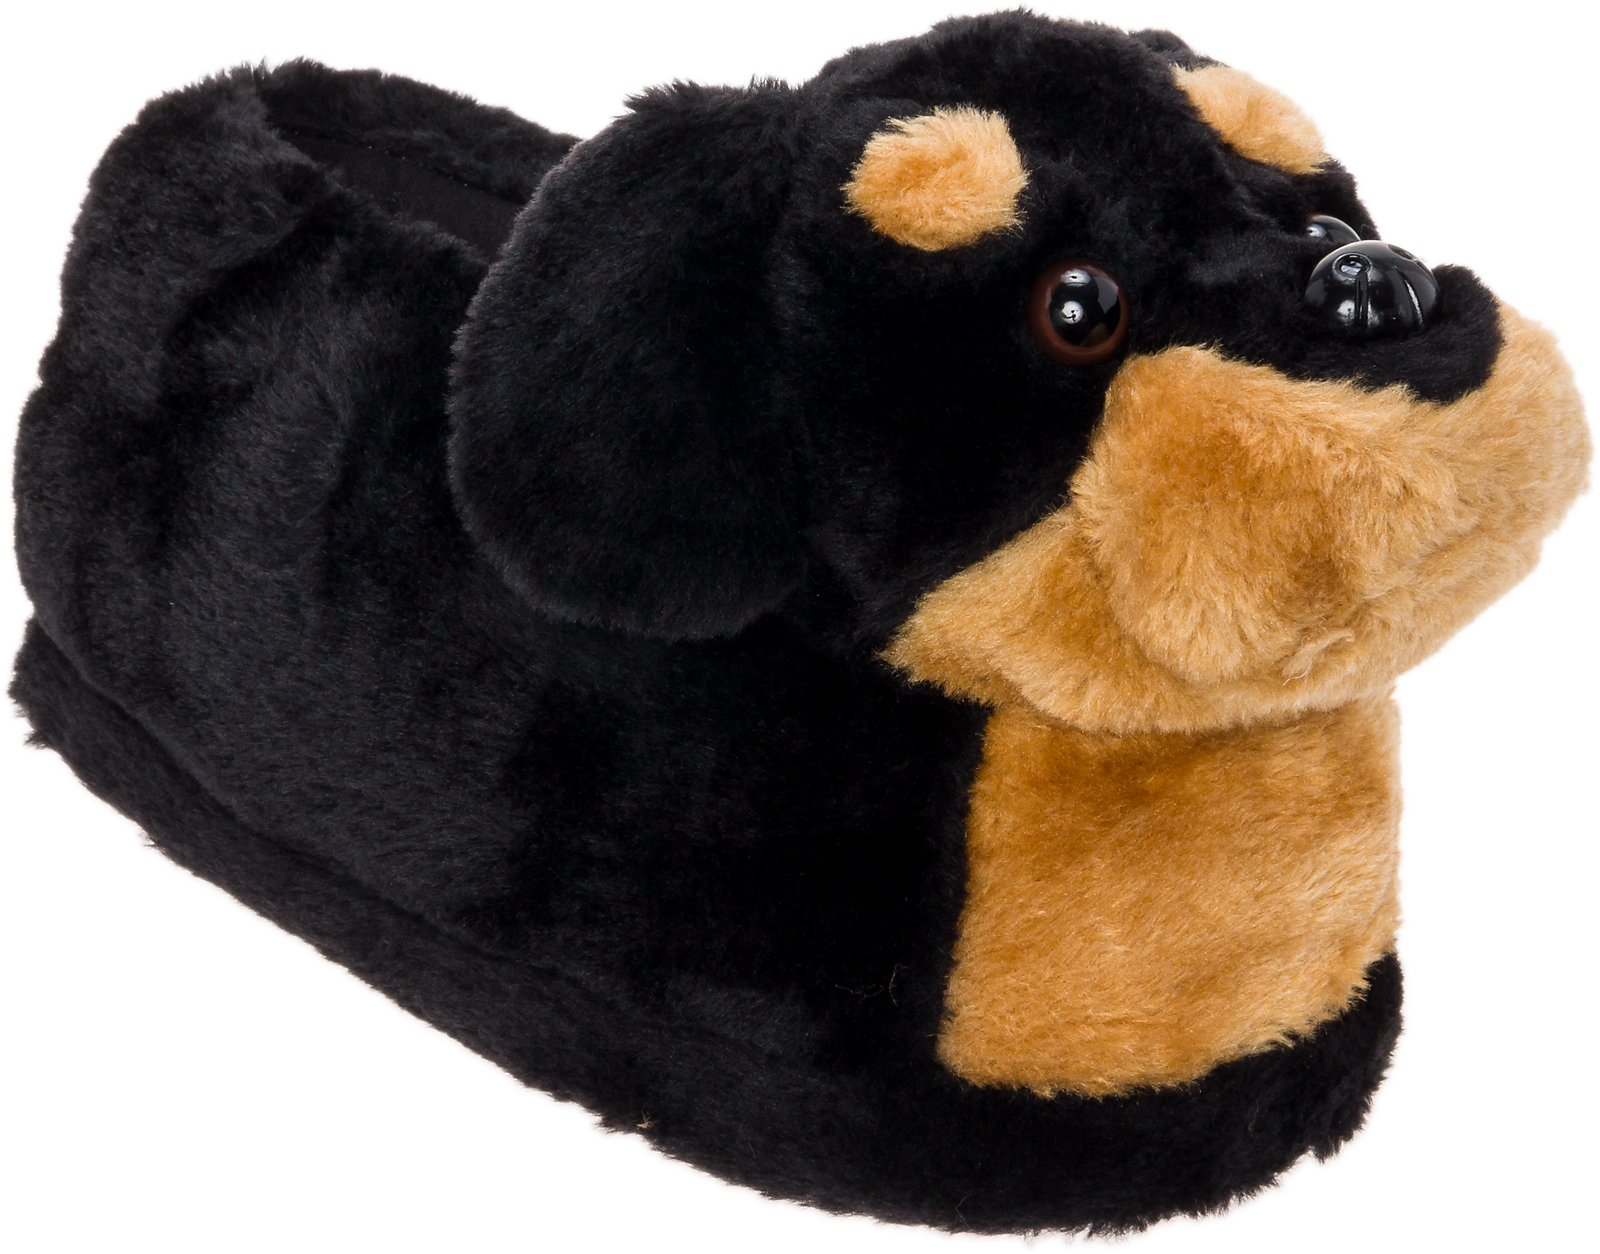 Silver Lilly Rottweiler Slippers - Plush Dog Slippers w/Platform by (Black/Tan, Medium)